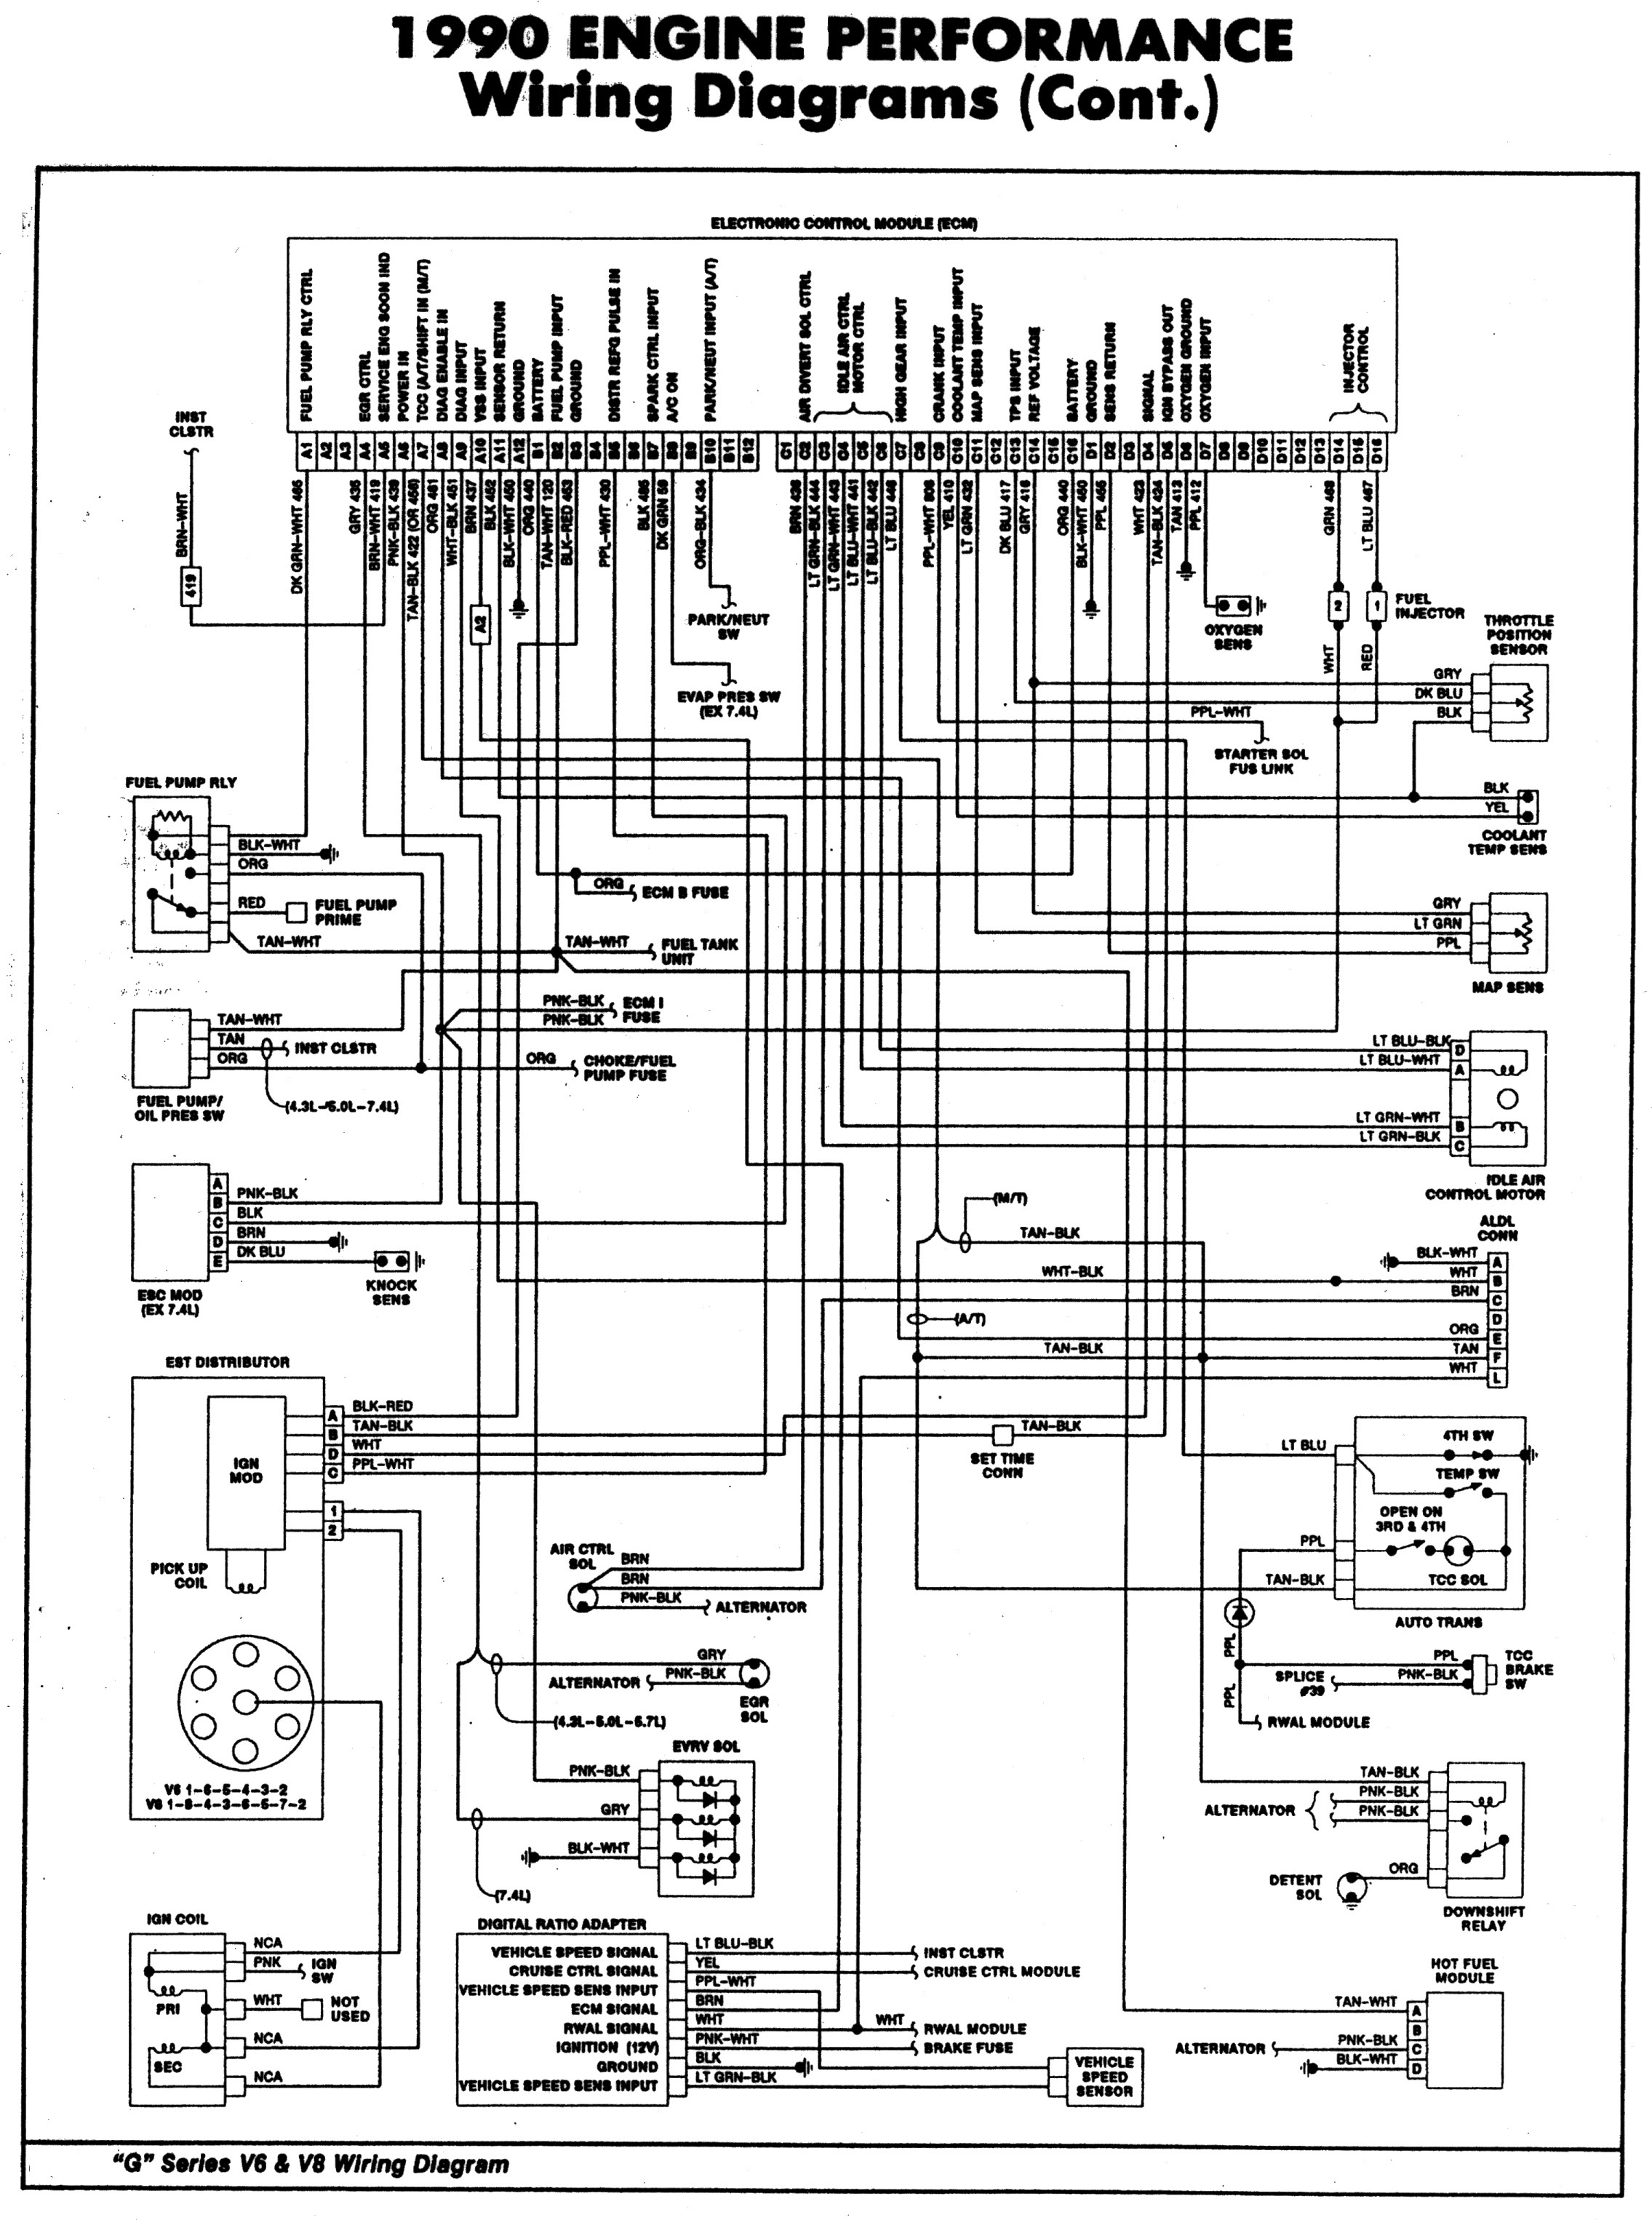 small resolution of 91 chevy lumina wiring diagram wiring diagram data today 1990 chevy lumina engine diagram